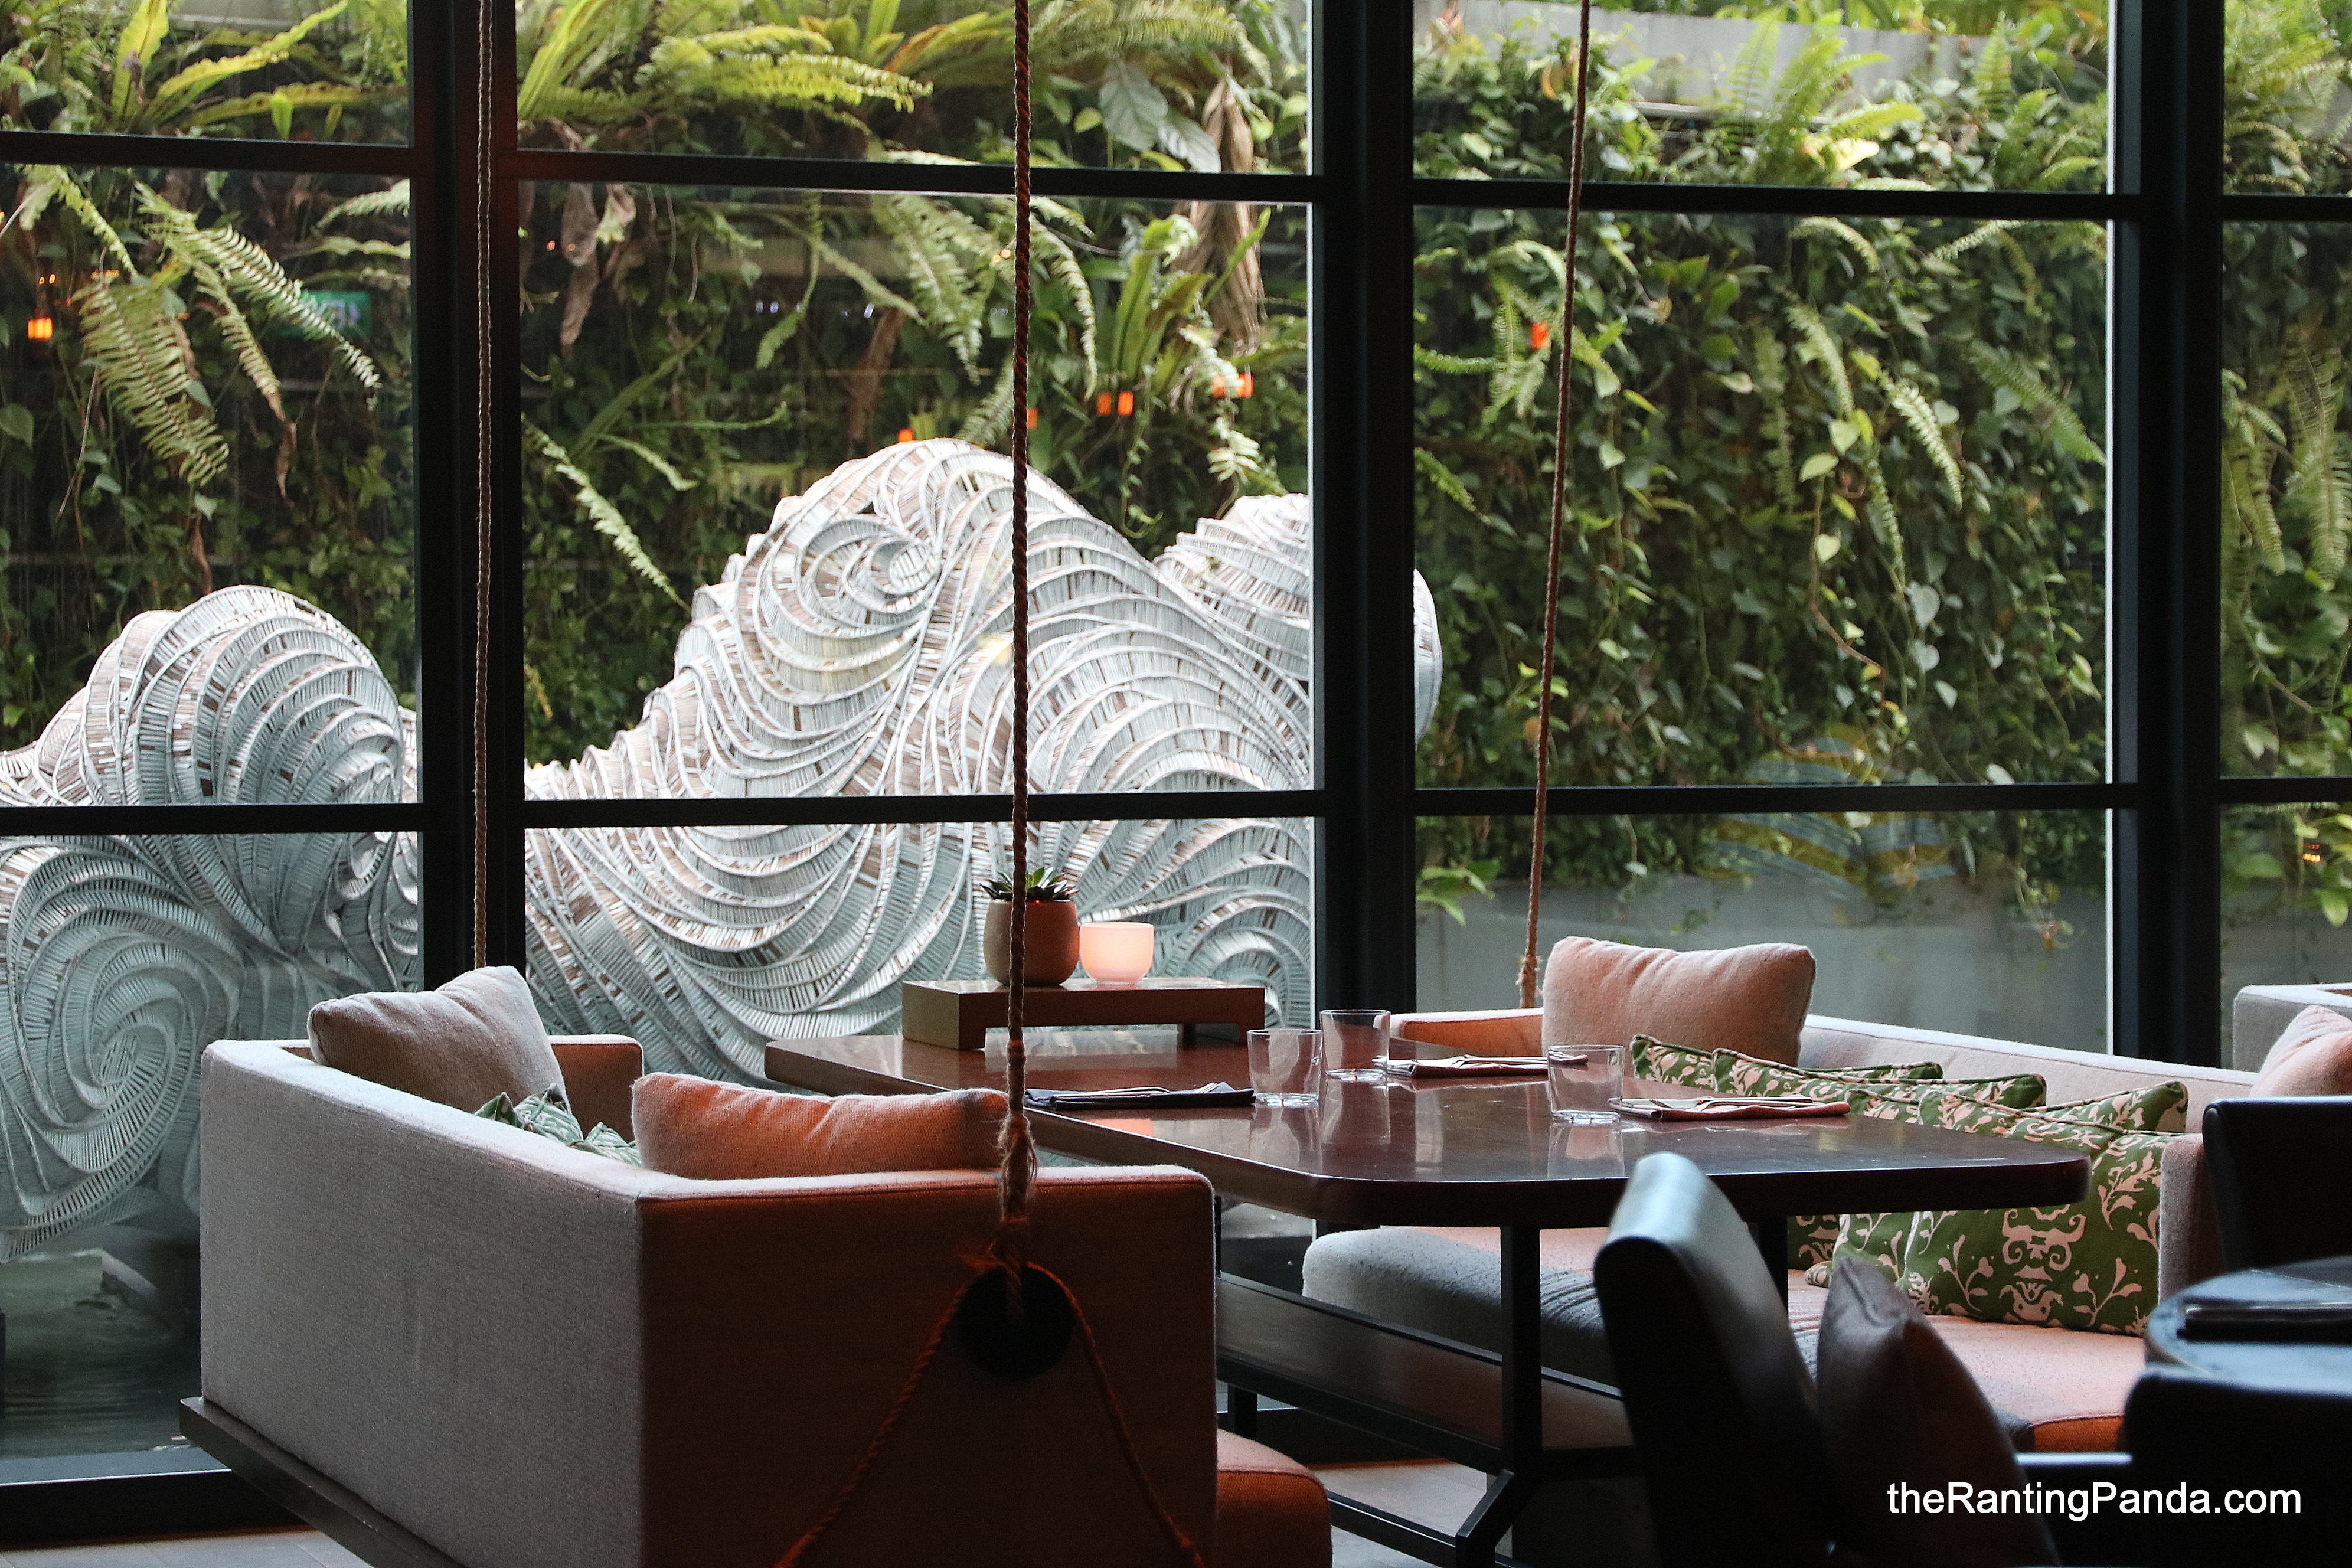 The Place It Took Us This Long To Finally Check Out ADRIFT By David Myers  Located At The Lobby Of Marina Bay Sands Hotel. The Restaurant, Which  Recently ...